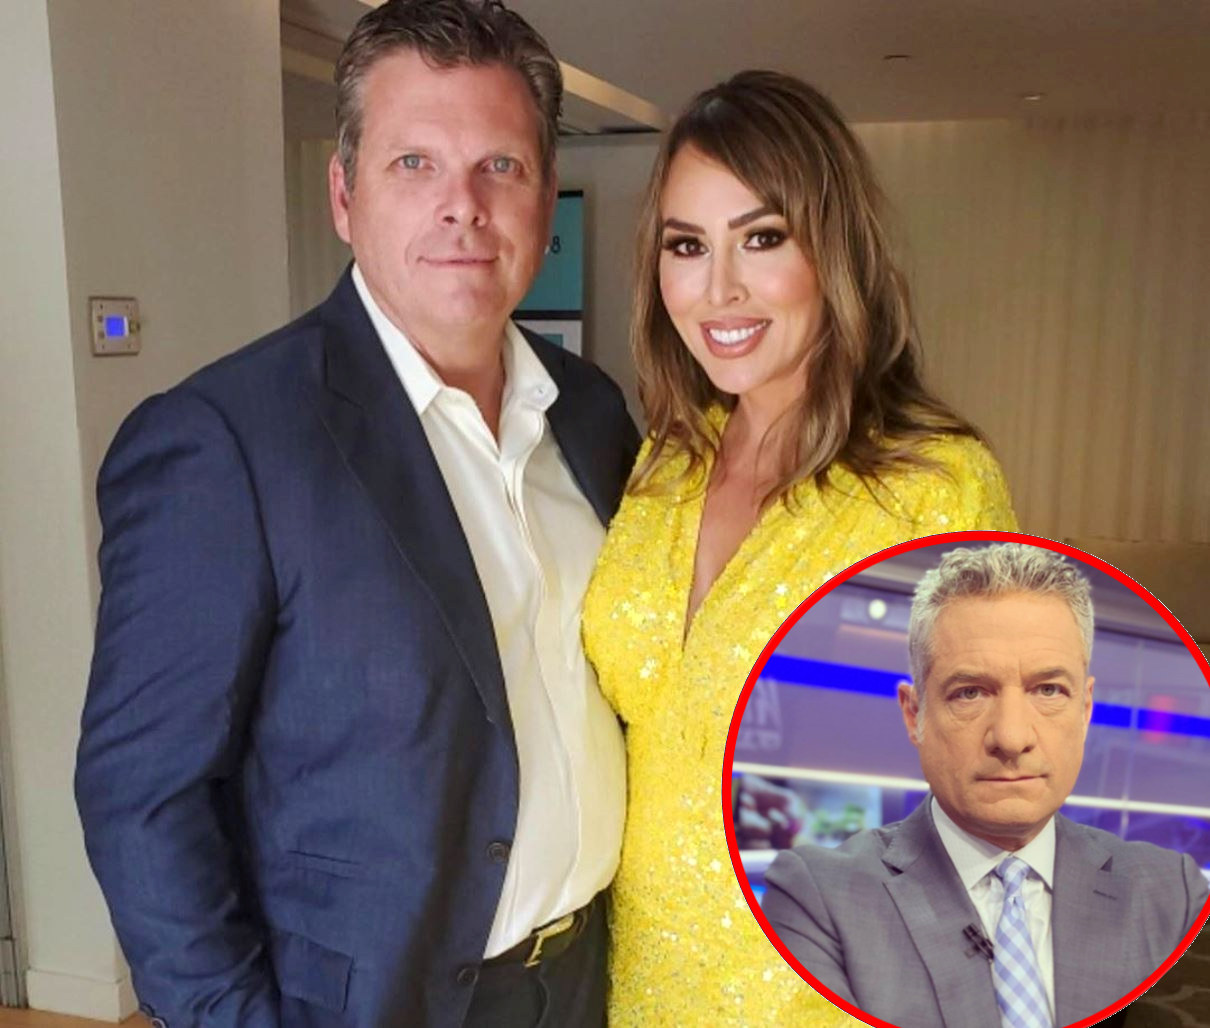 "RHOC's Kelly Dodd Slams 'A-Hole' Boyfriend Brian Reagan and Says They're Done ""For Good,"" Reveals She's Now Dating Fox News Reporter Rick Leventhal"